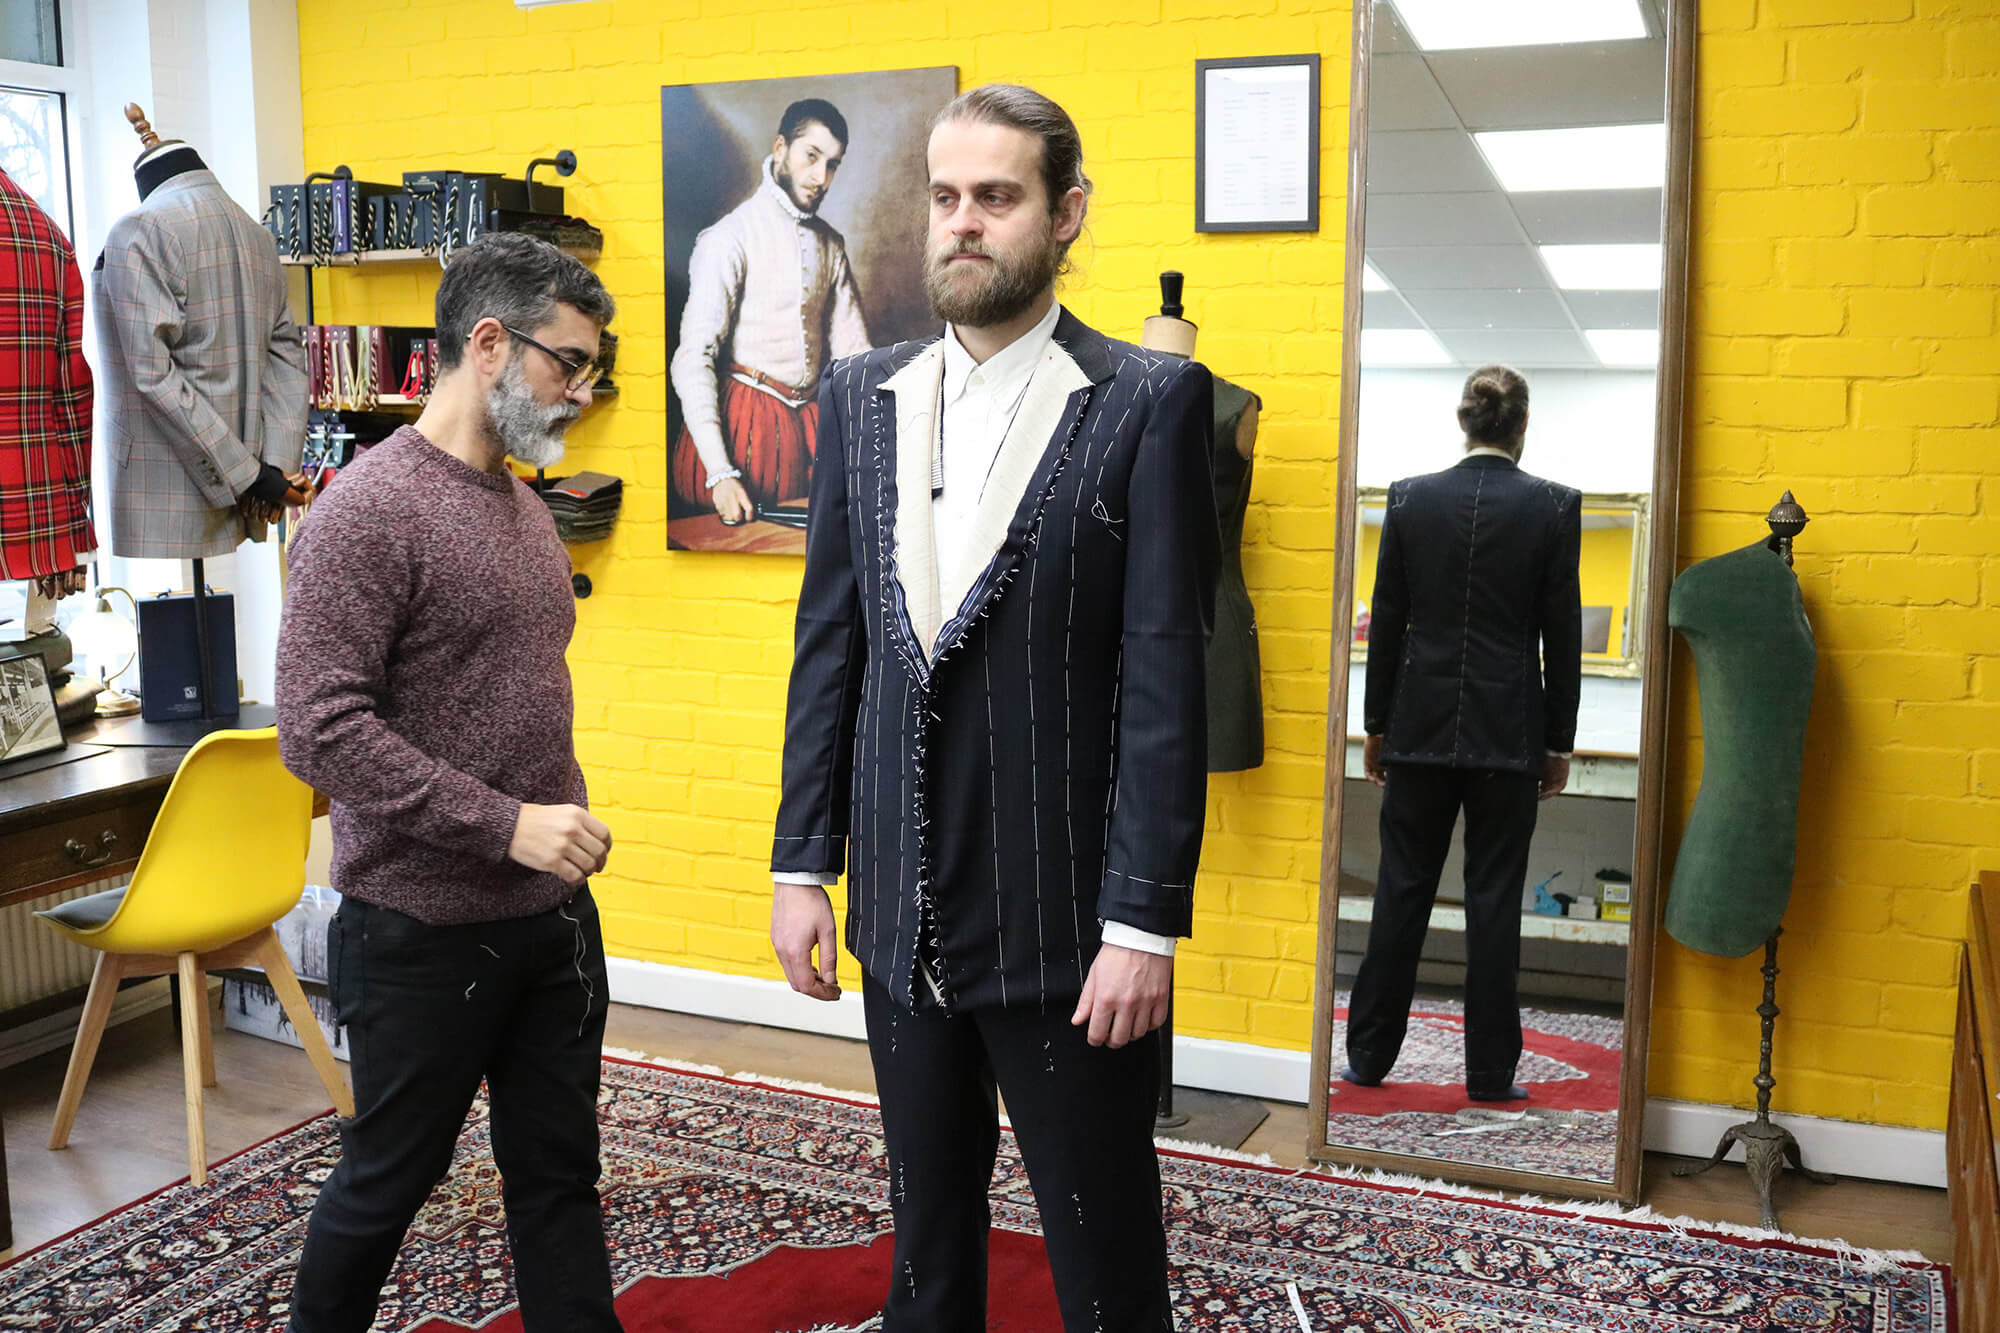 Bespoke tailoring courses